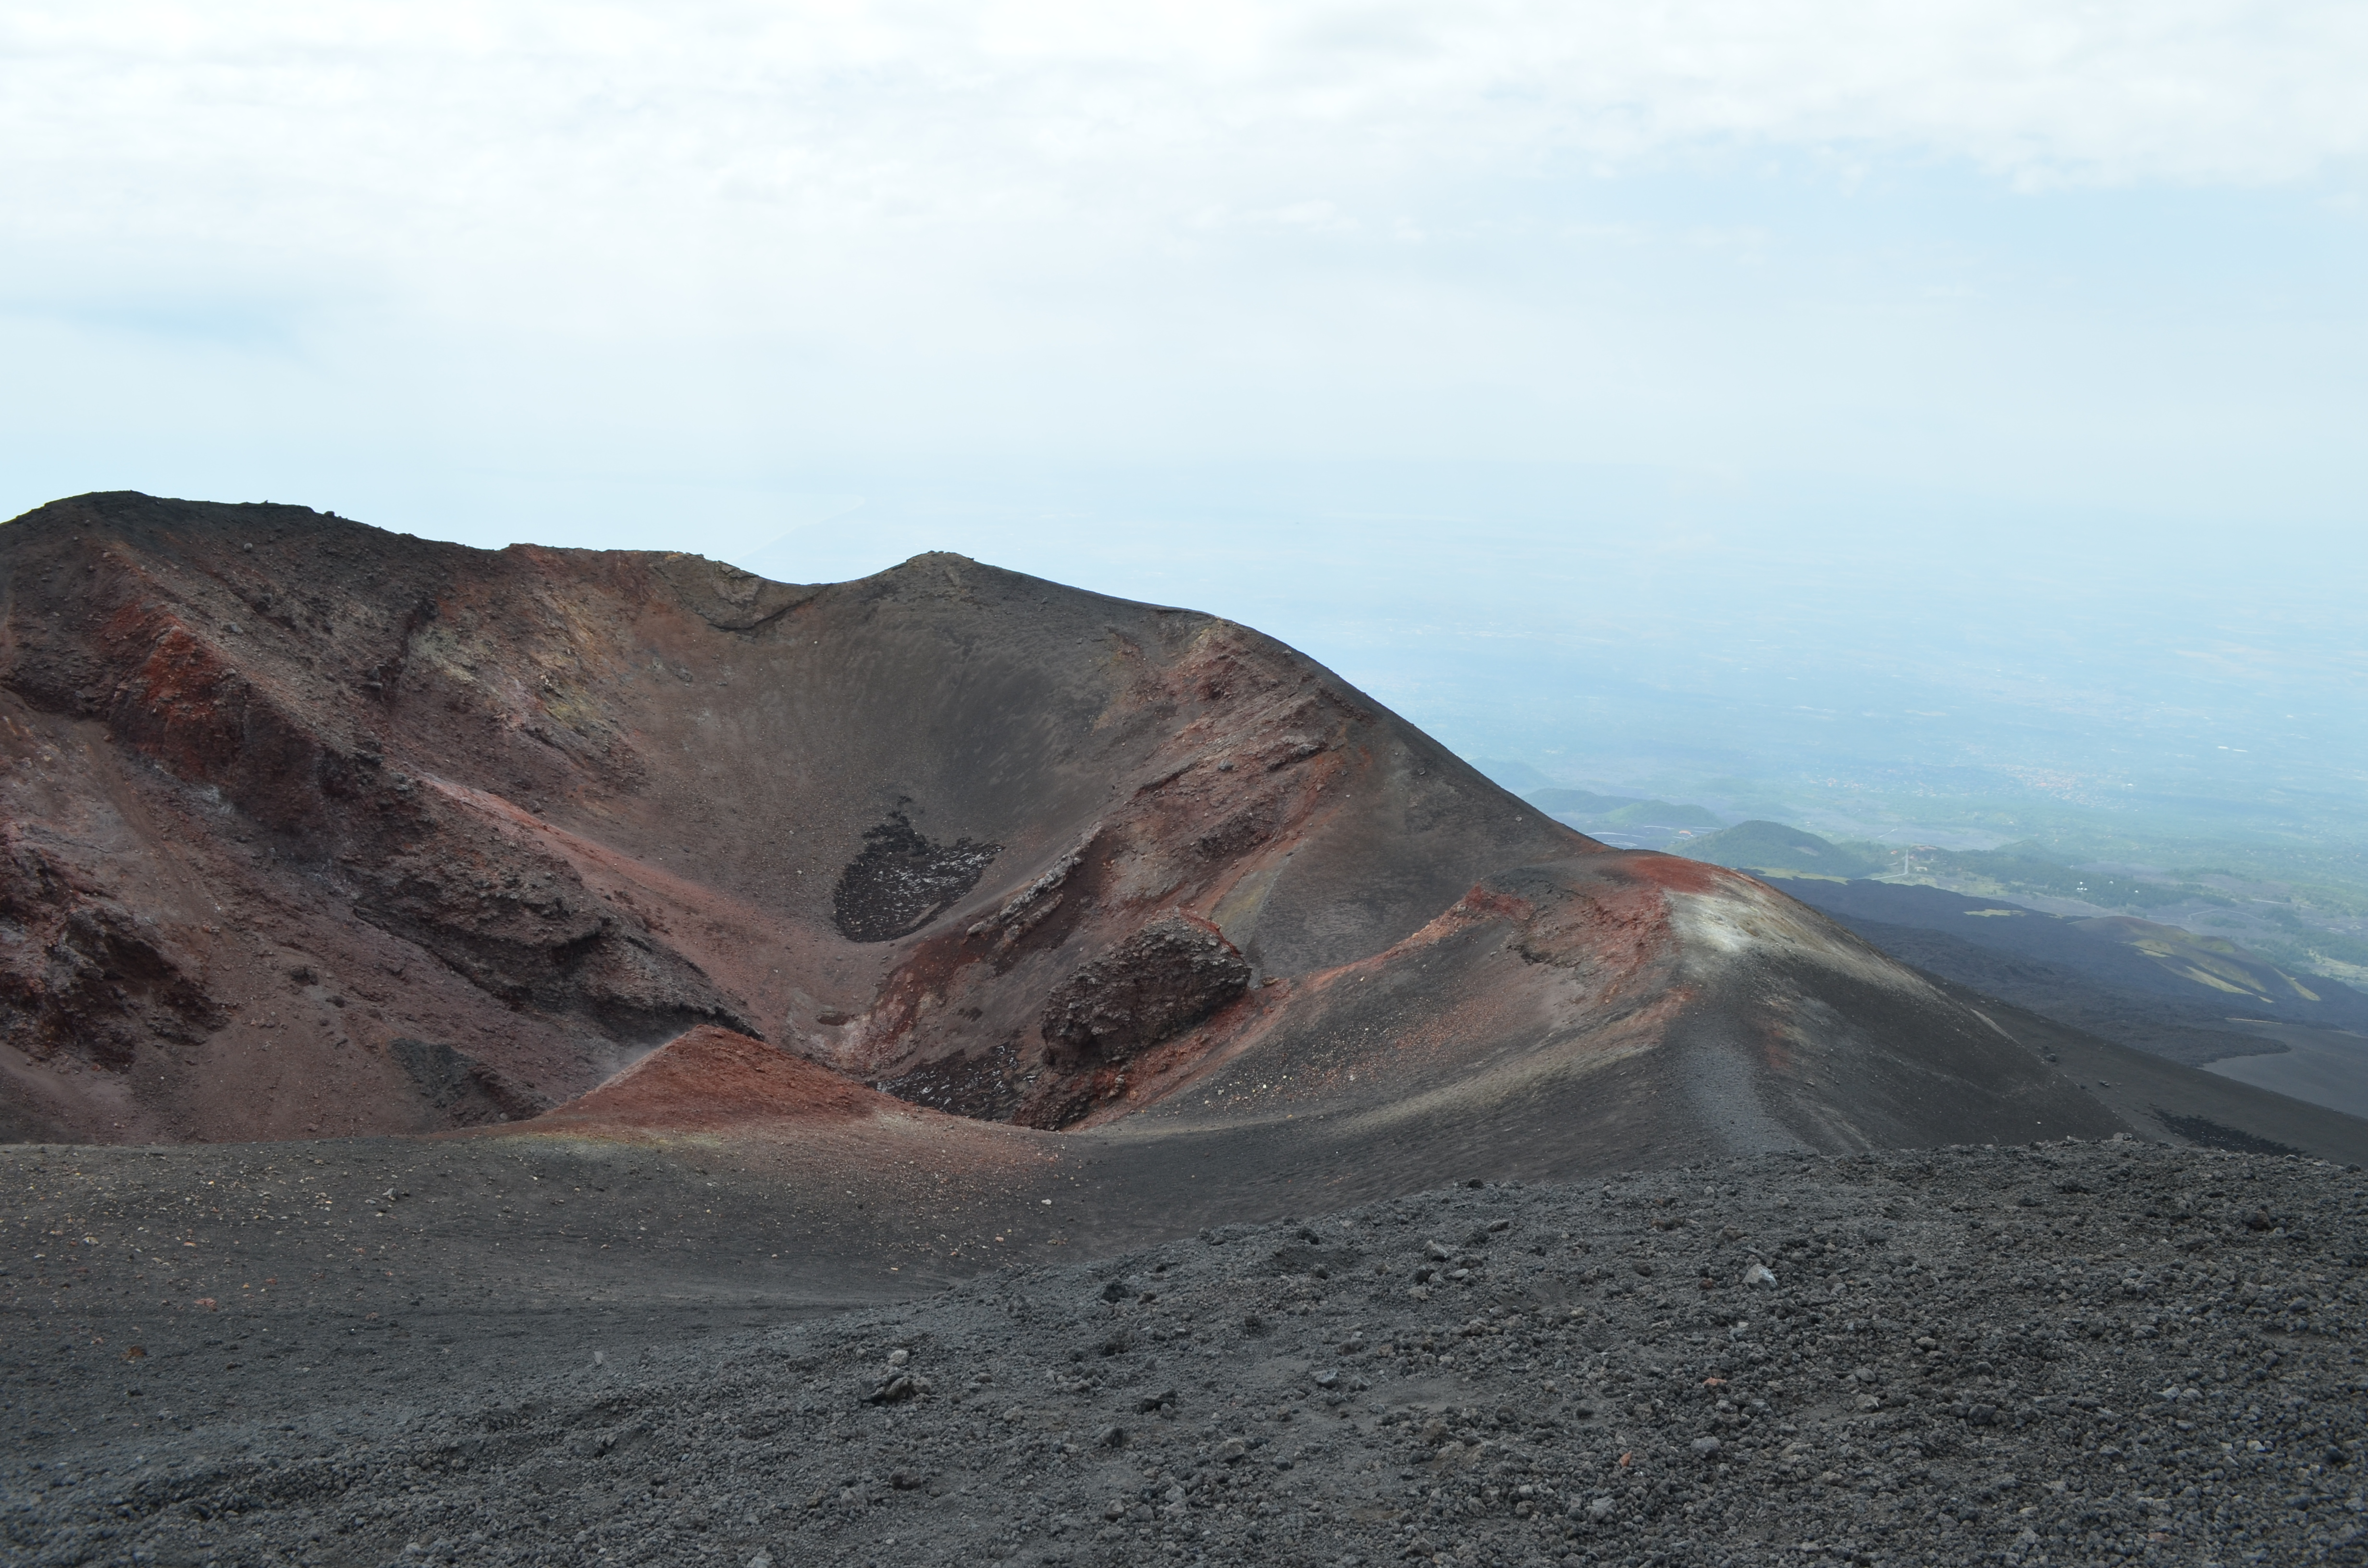 At the top of Mt. Etna